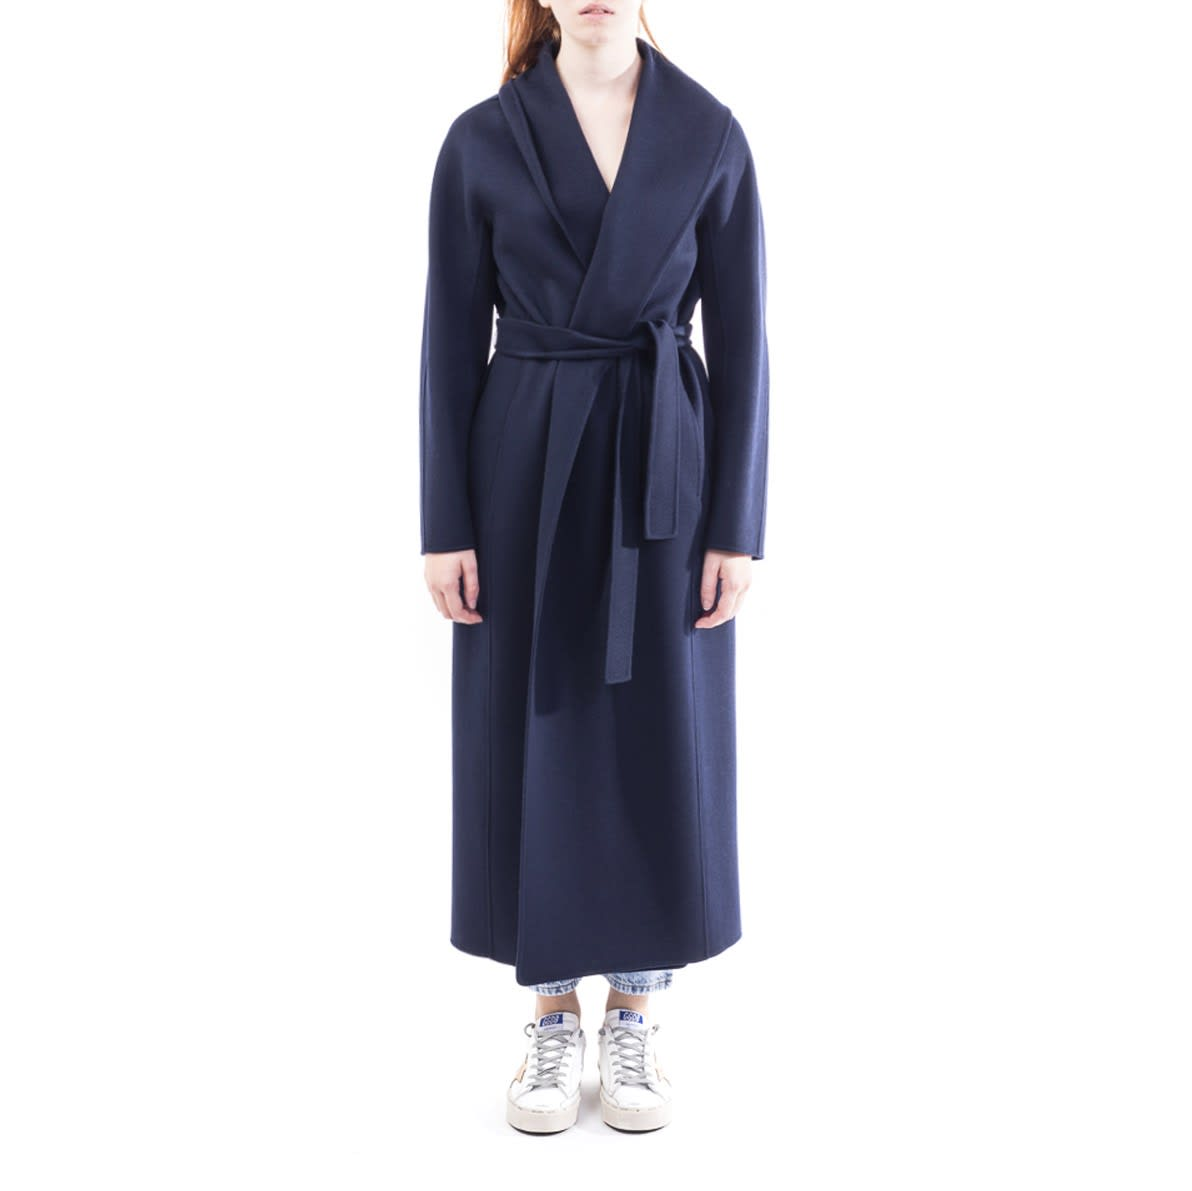 Virgin Wool Max Mara Messilu Coat